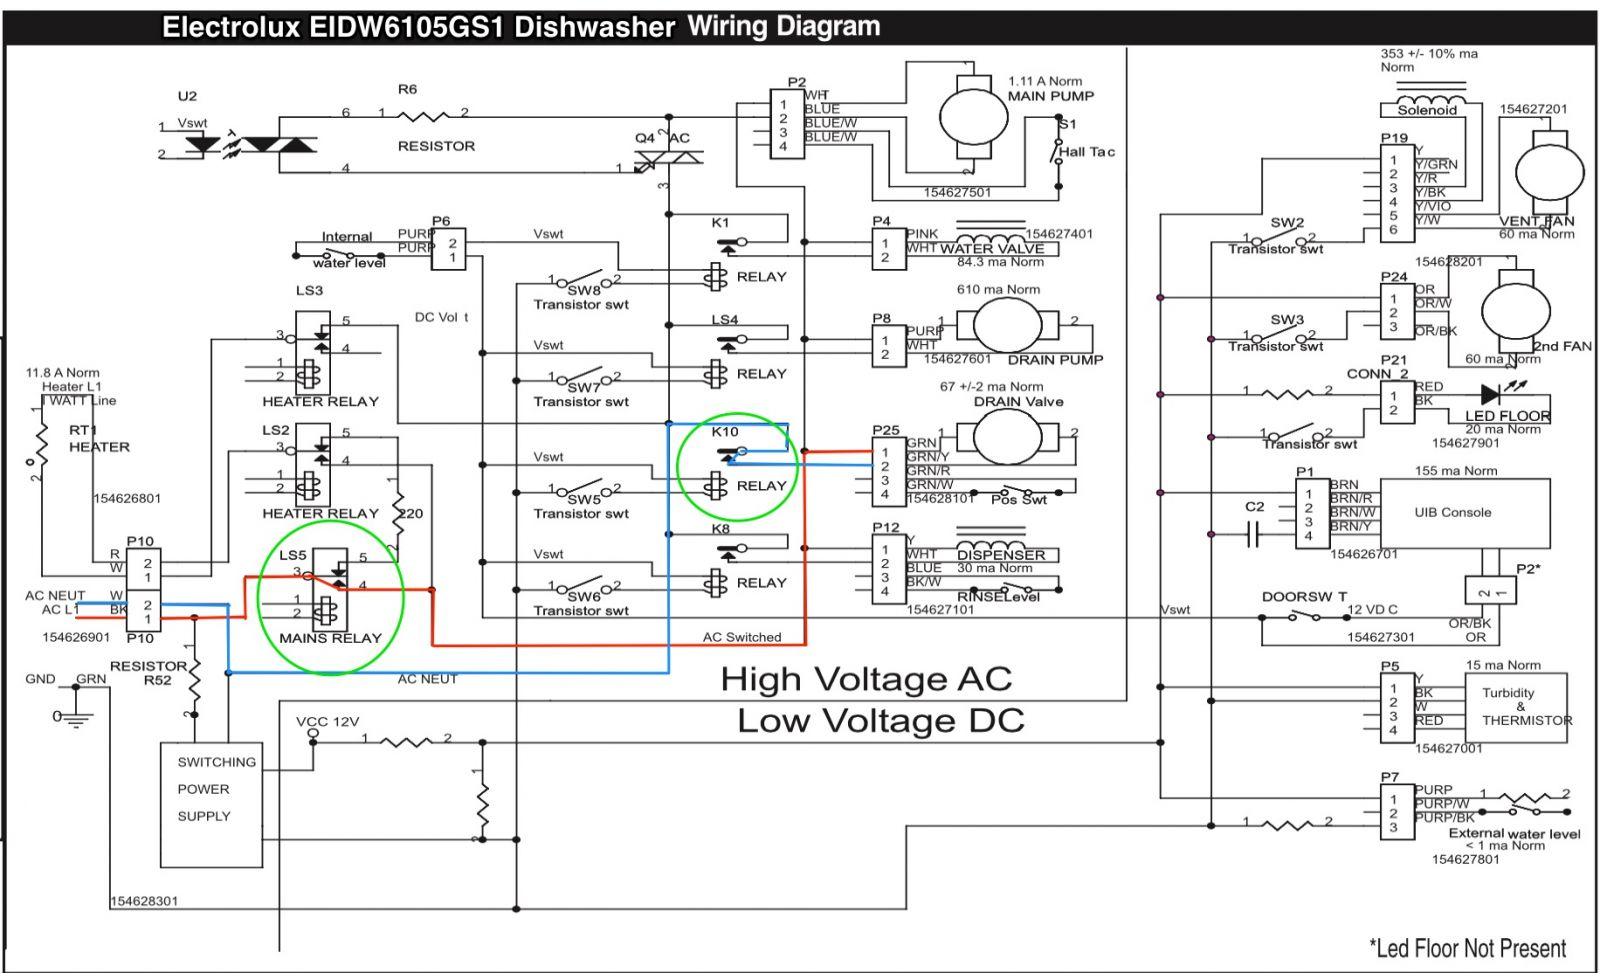 hight resolution of electrolux eidw6105gs1 dishwasher wiring diagram the appliantology bosch dishwasher repair diagram dishwasher circuit diagram